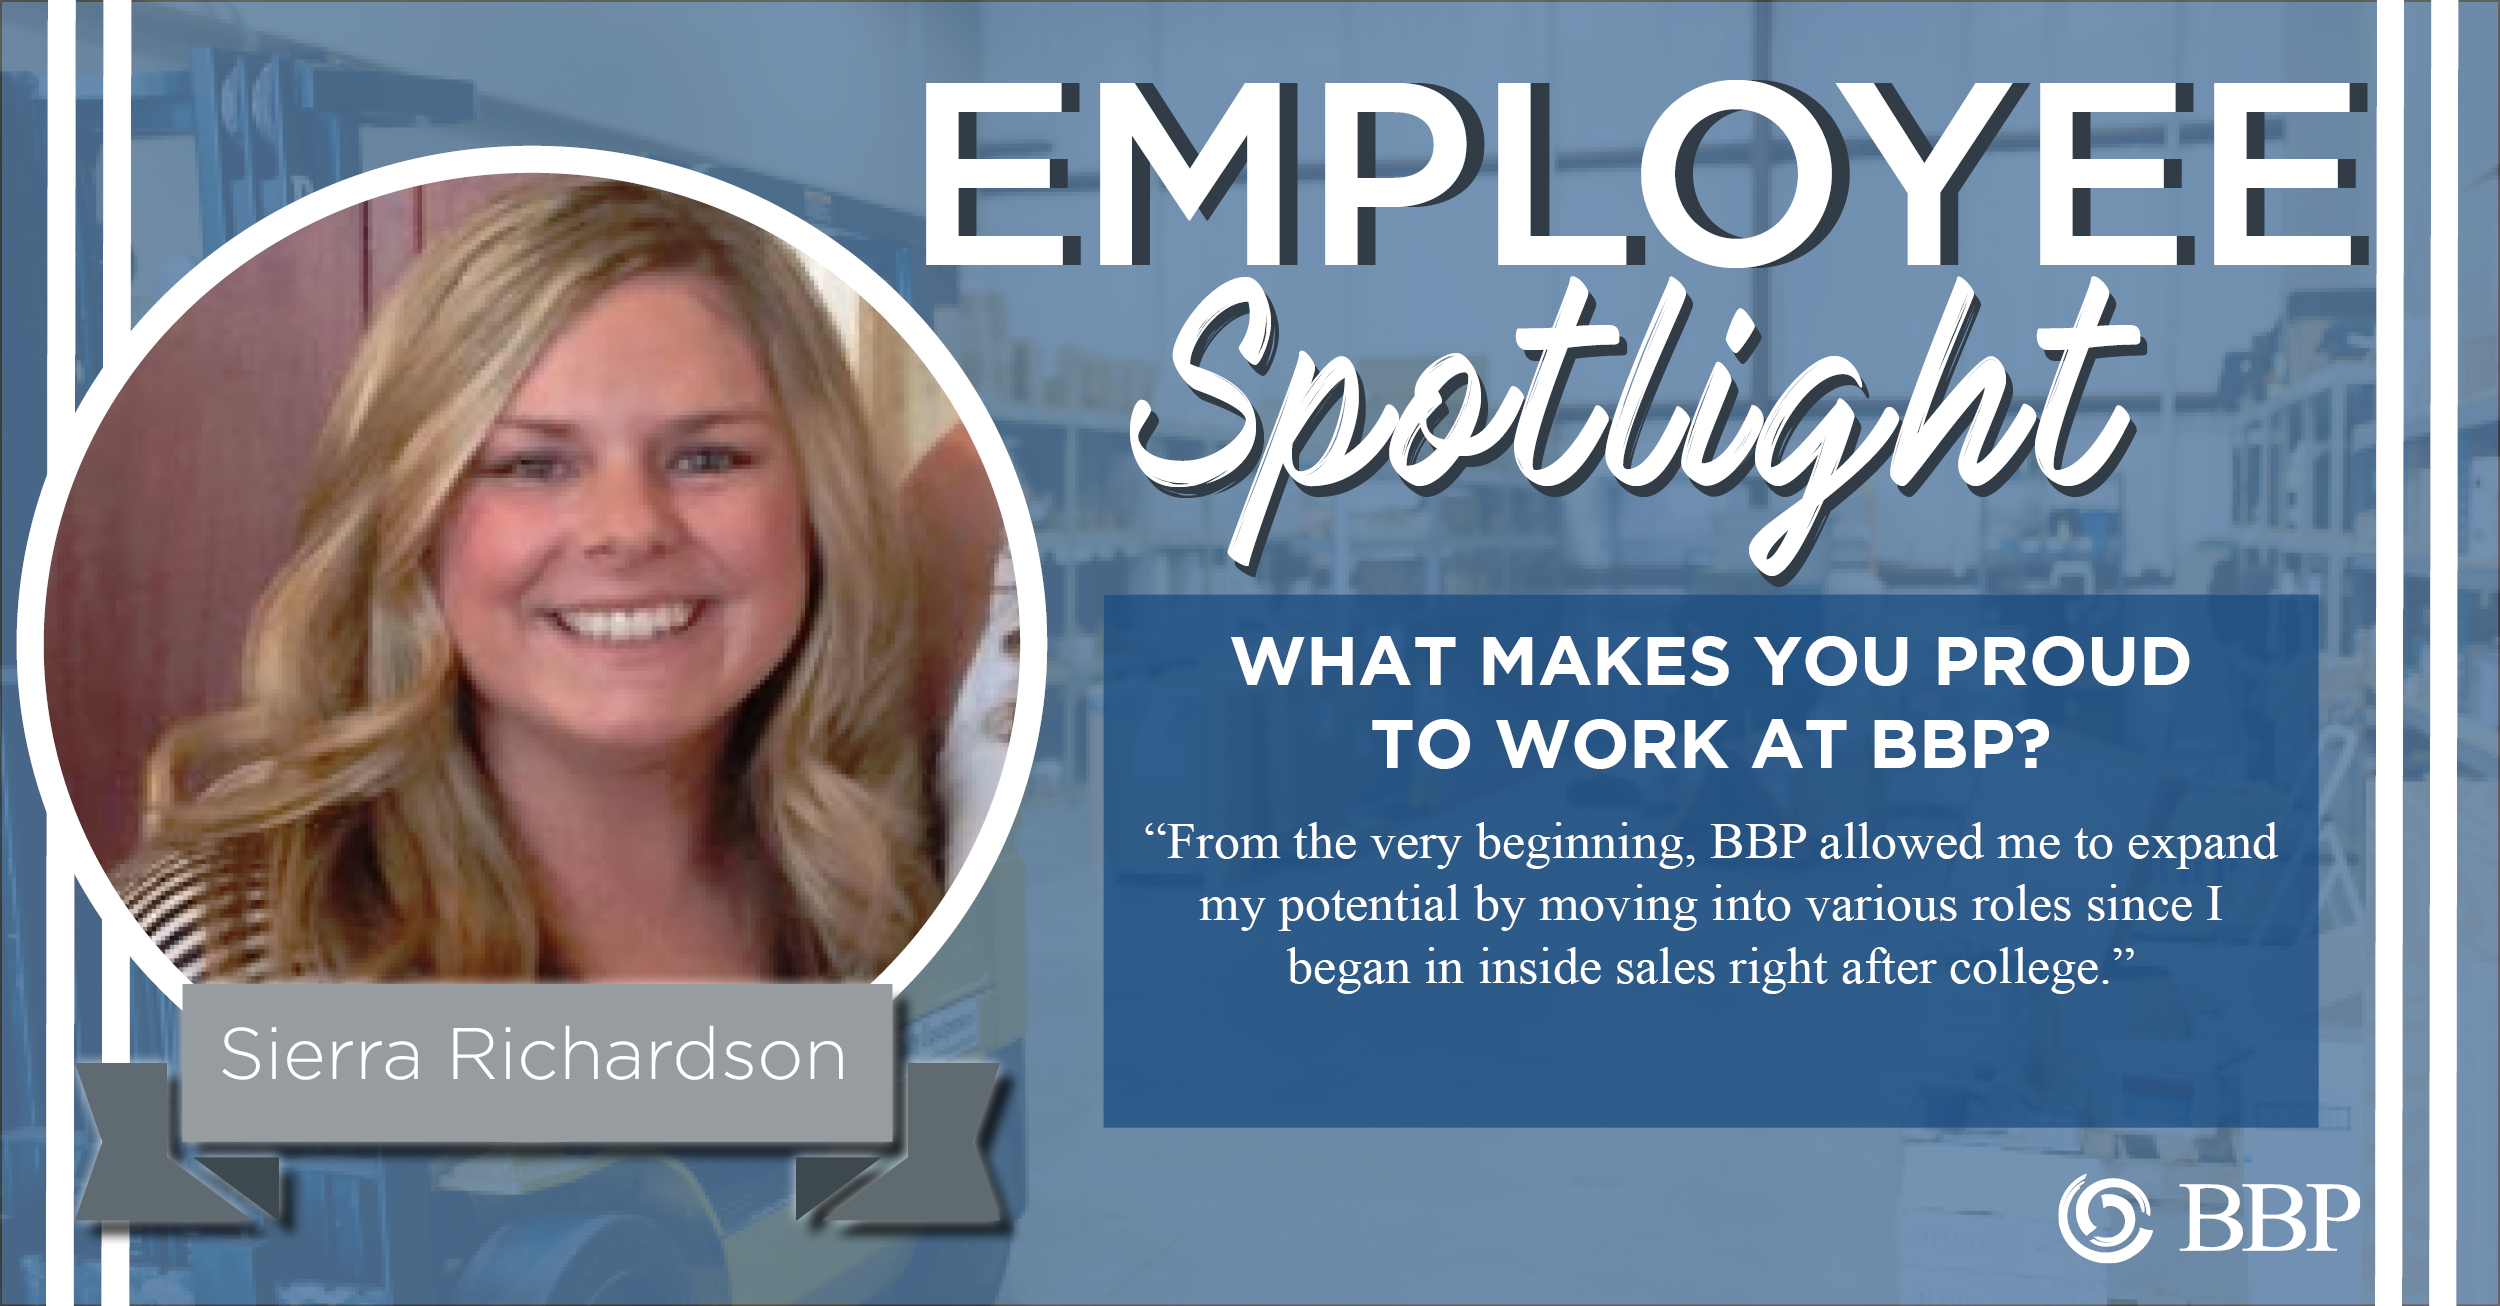 Sierra Richardson Employee Spotlight